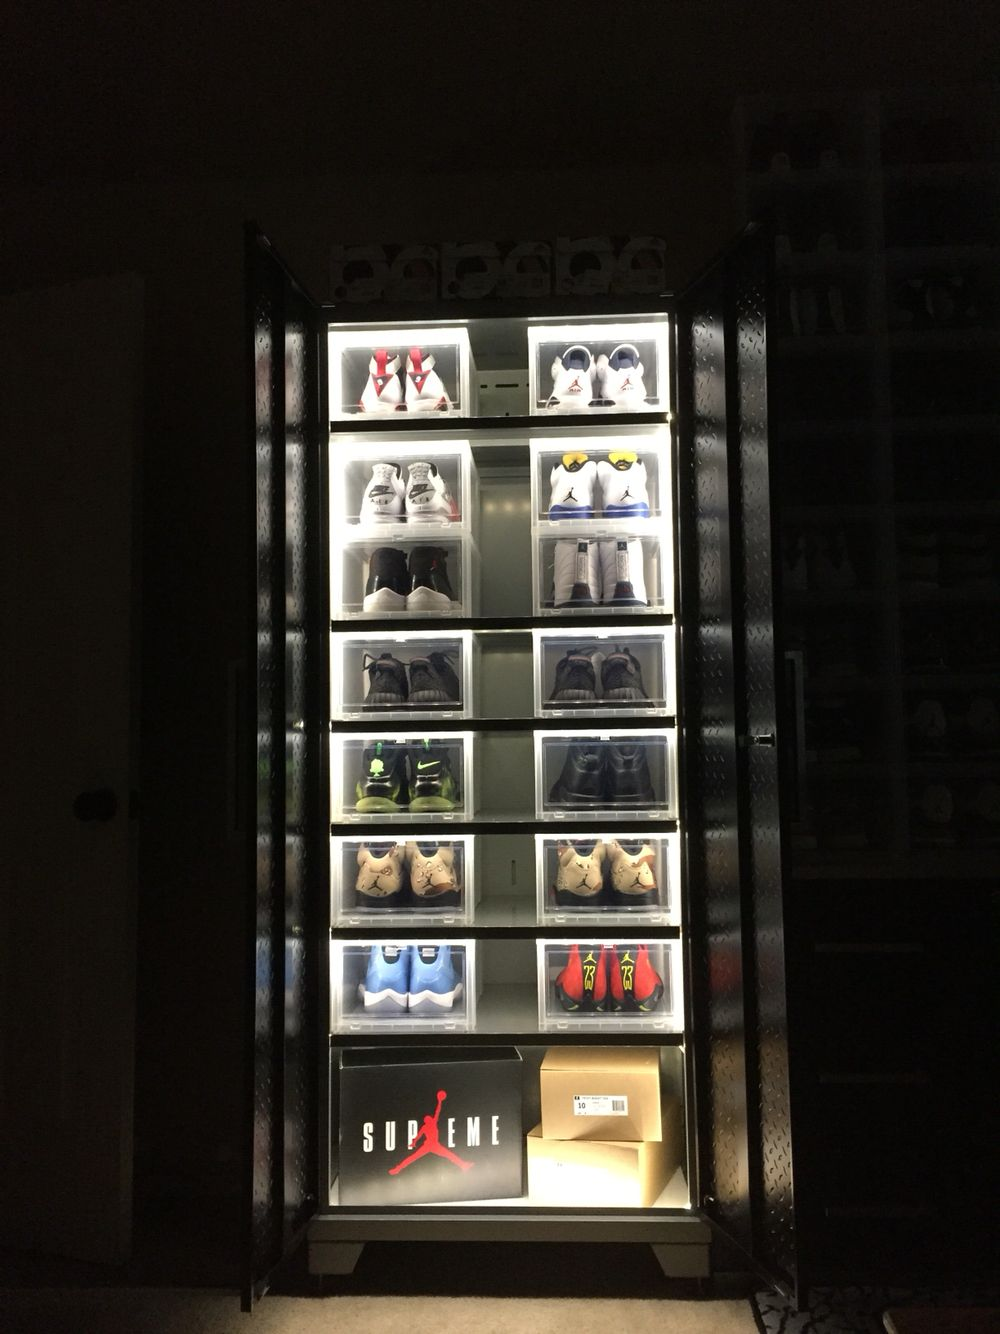 Jordans12 39 On Sneaker Displays Shoe Room Sneaker Storage